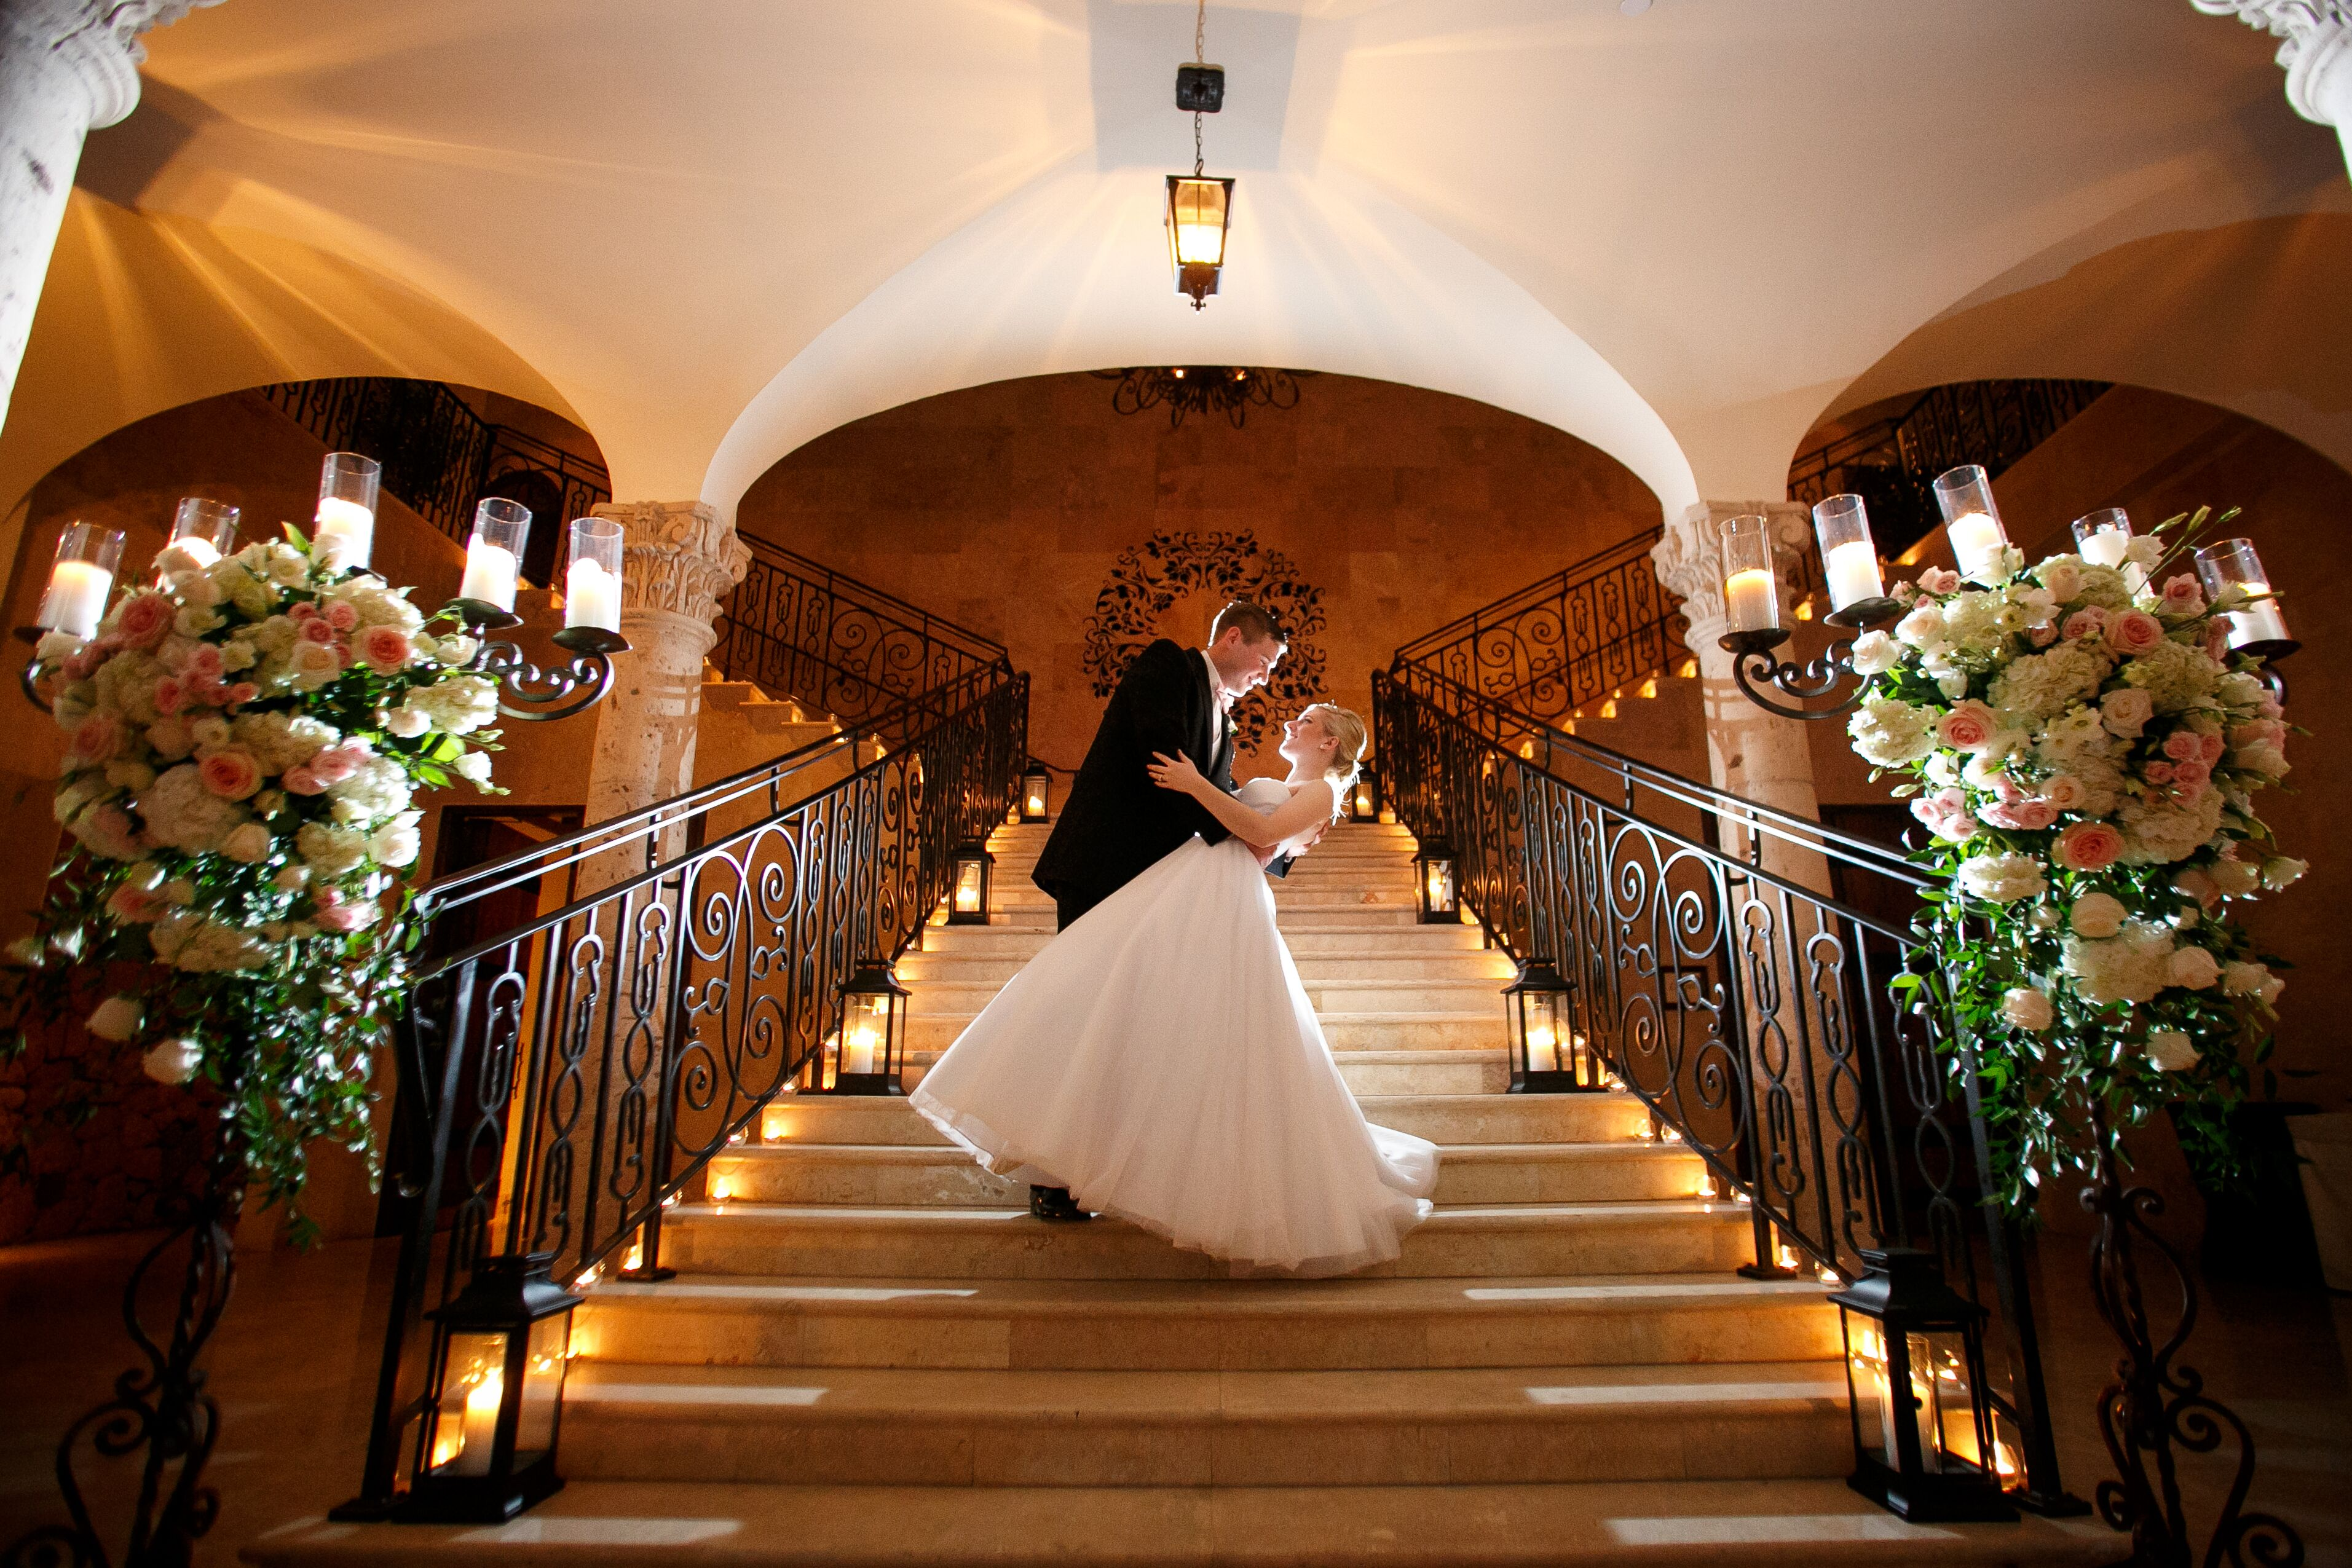 Wedding reception venues in houston tx the knot bell tower on 34th junglespirit Images